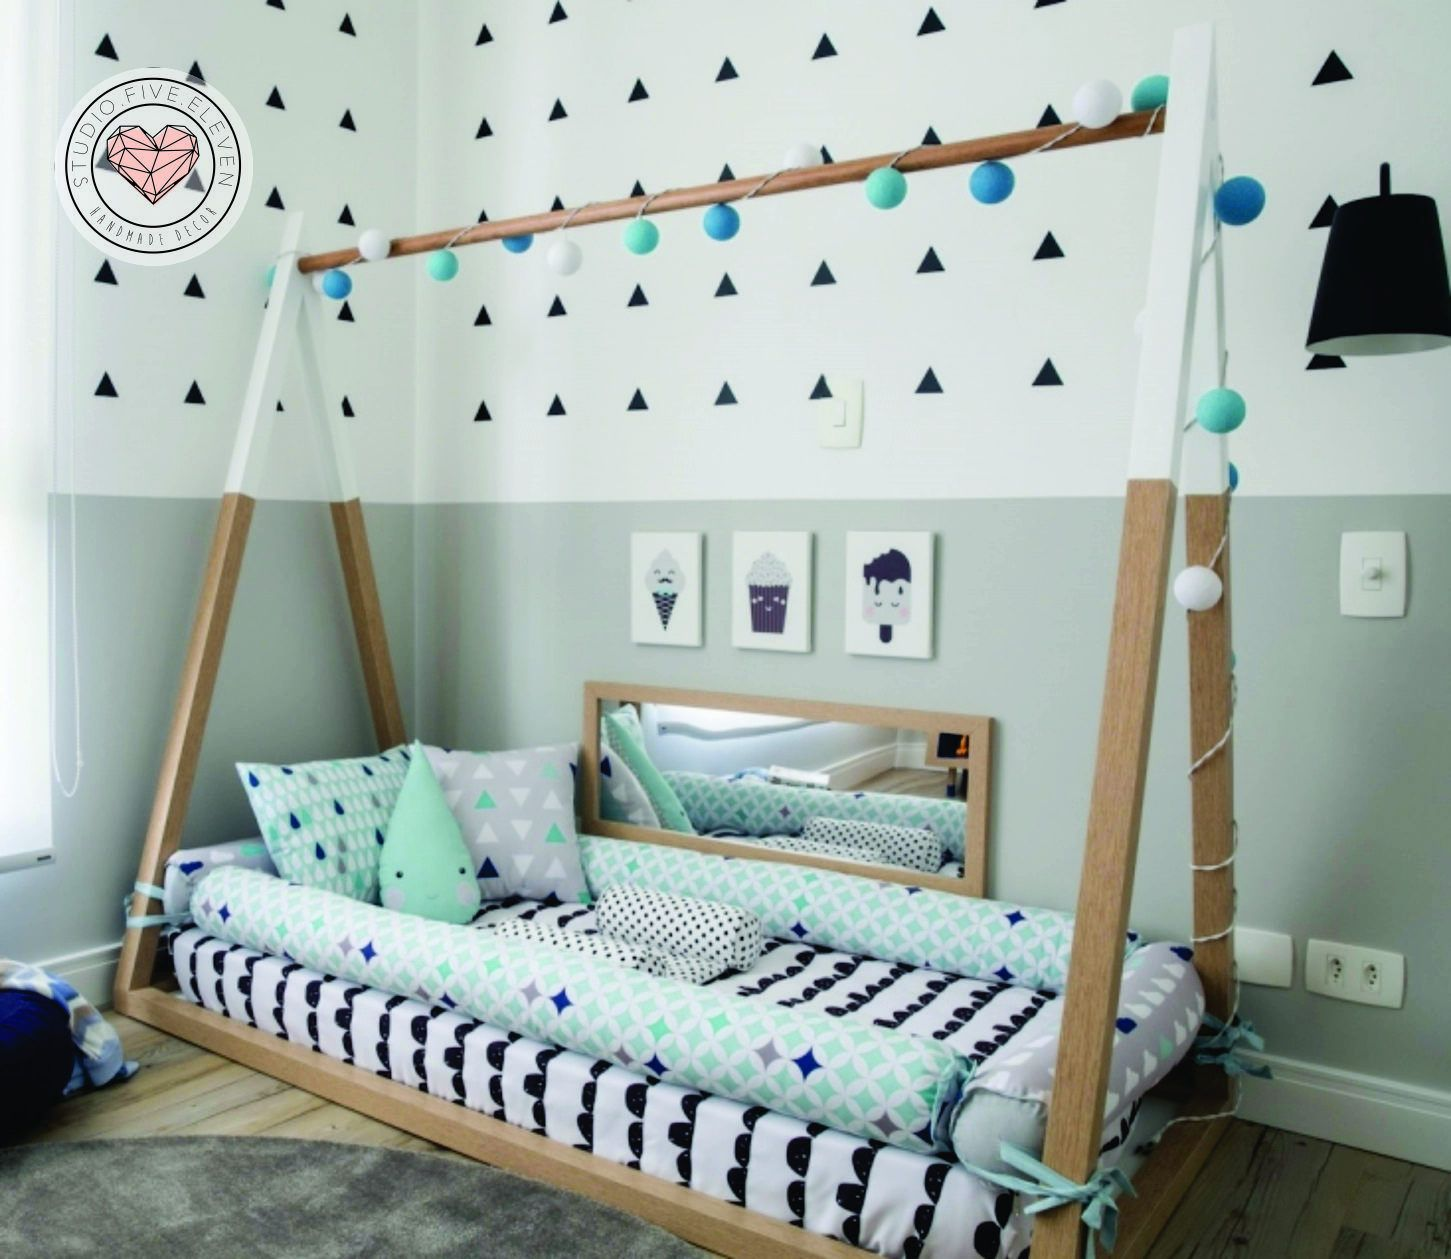 Tent Bed Montessori Bed Nursery Bed Kids Bed